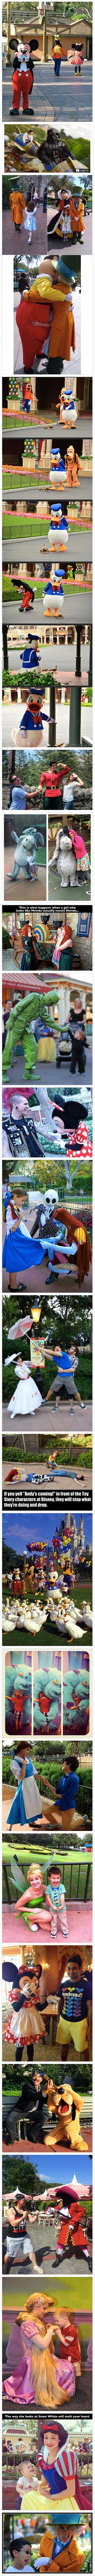 Here is some undeniable proof that Disney theme parks are a magical place.